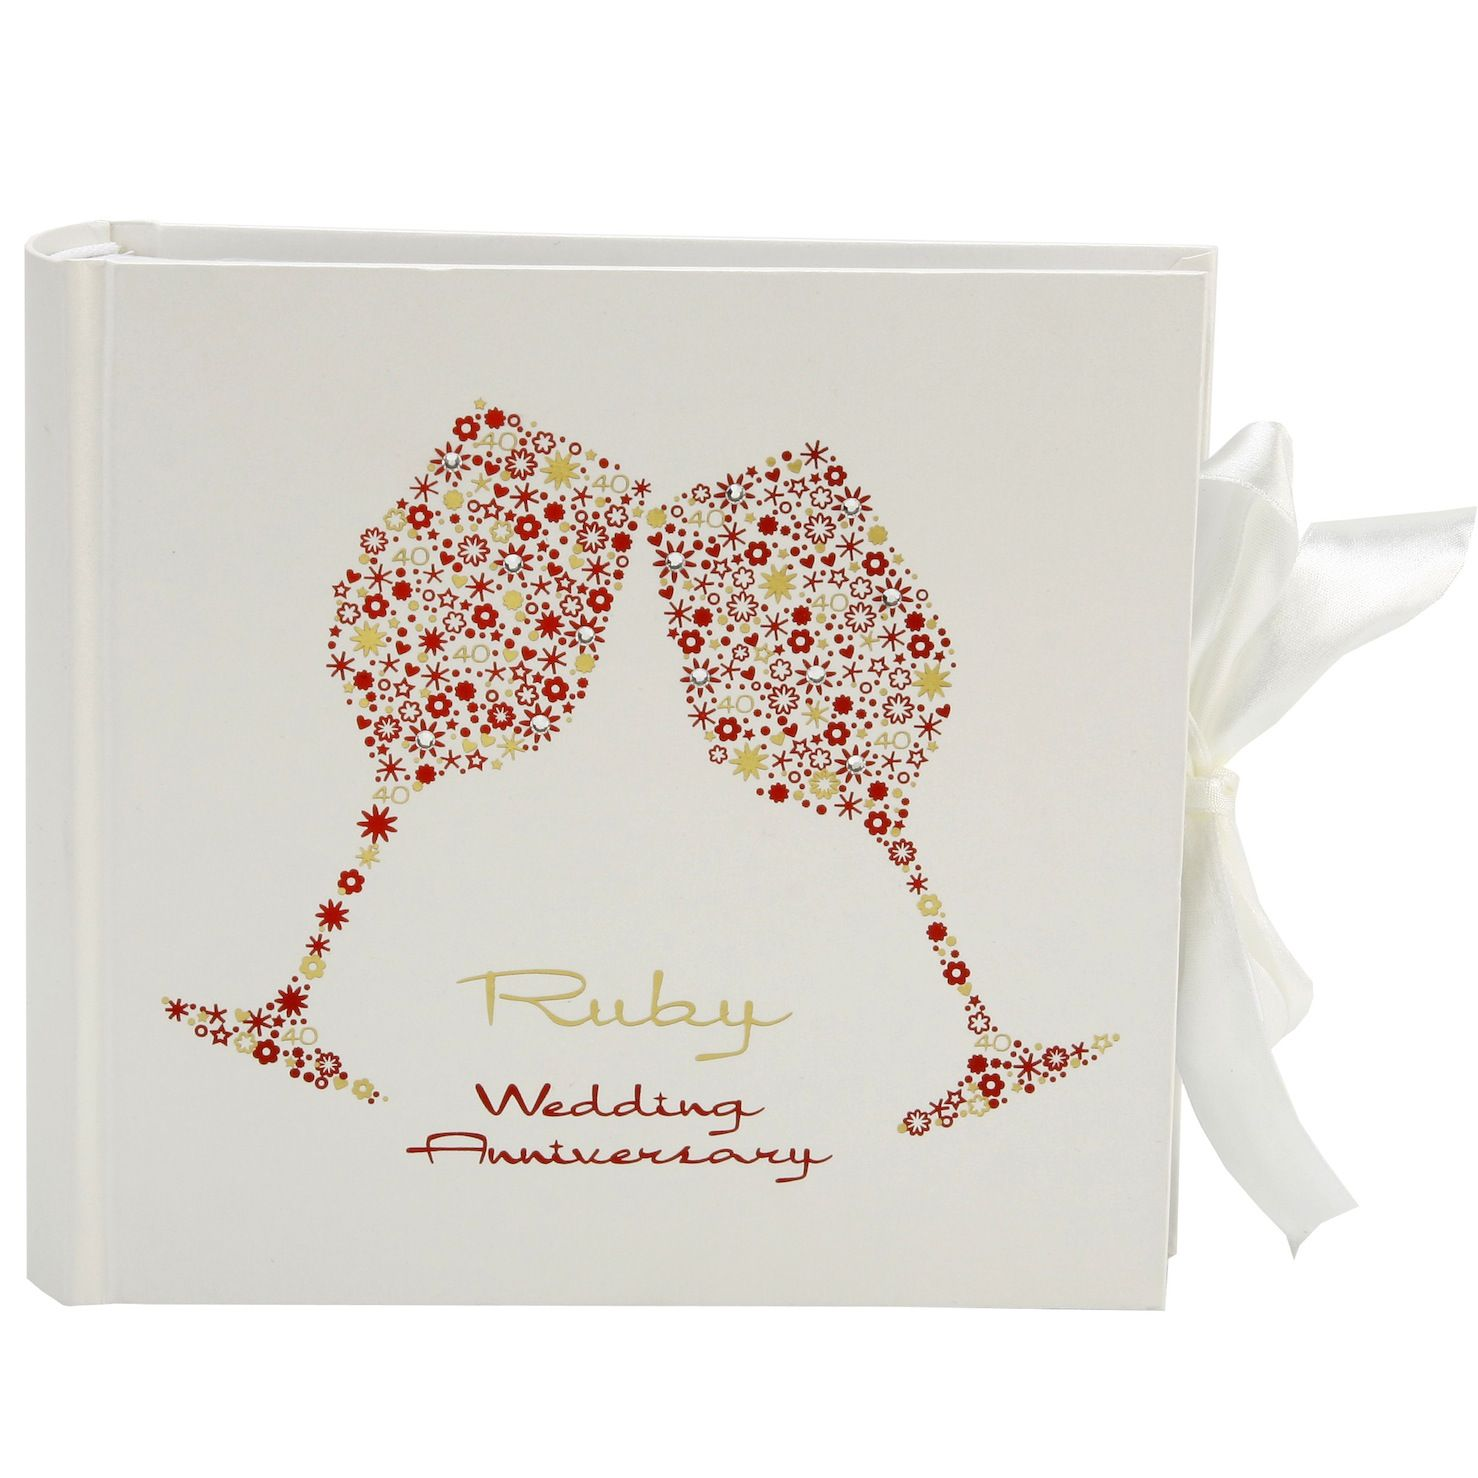 40th Wedding Anniversary Ruby Wedding Anniversary Photo Album